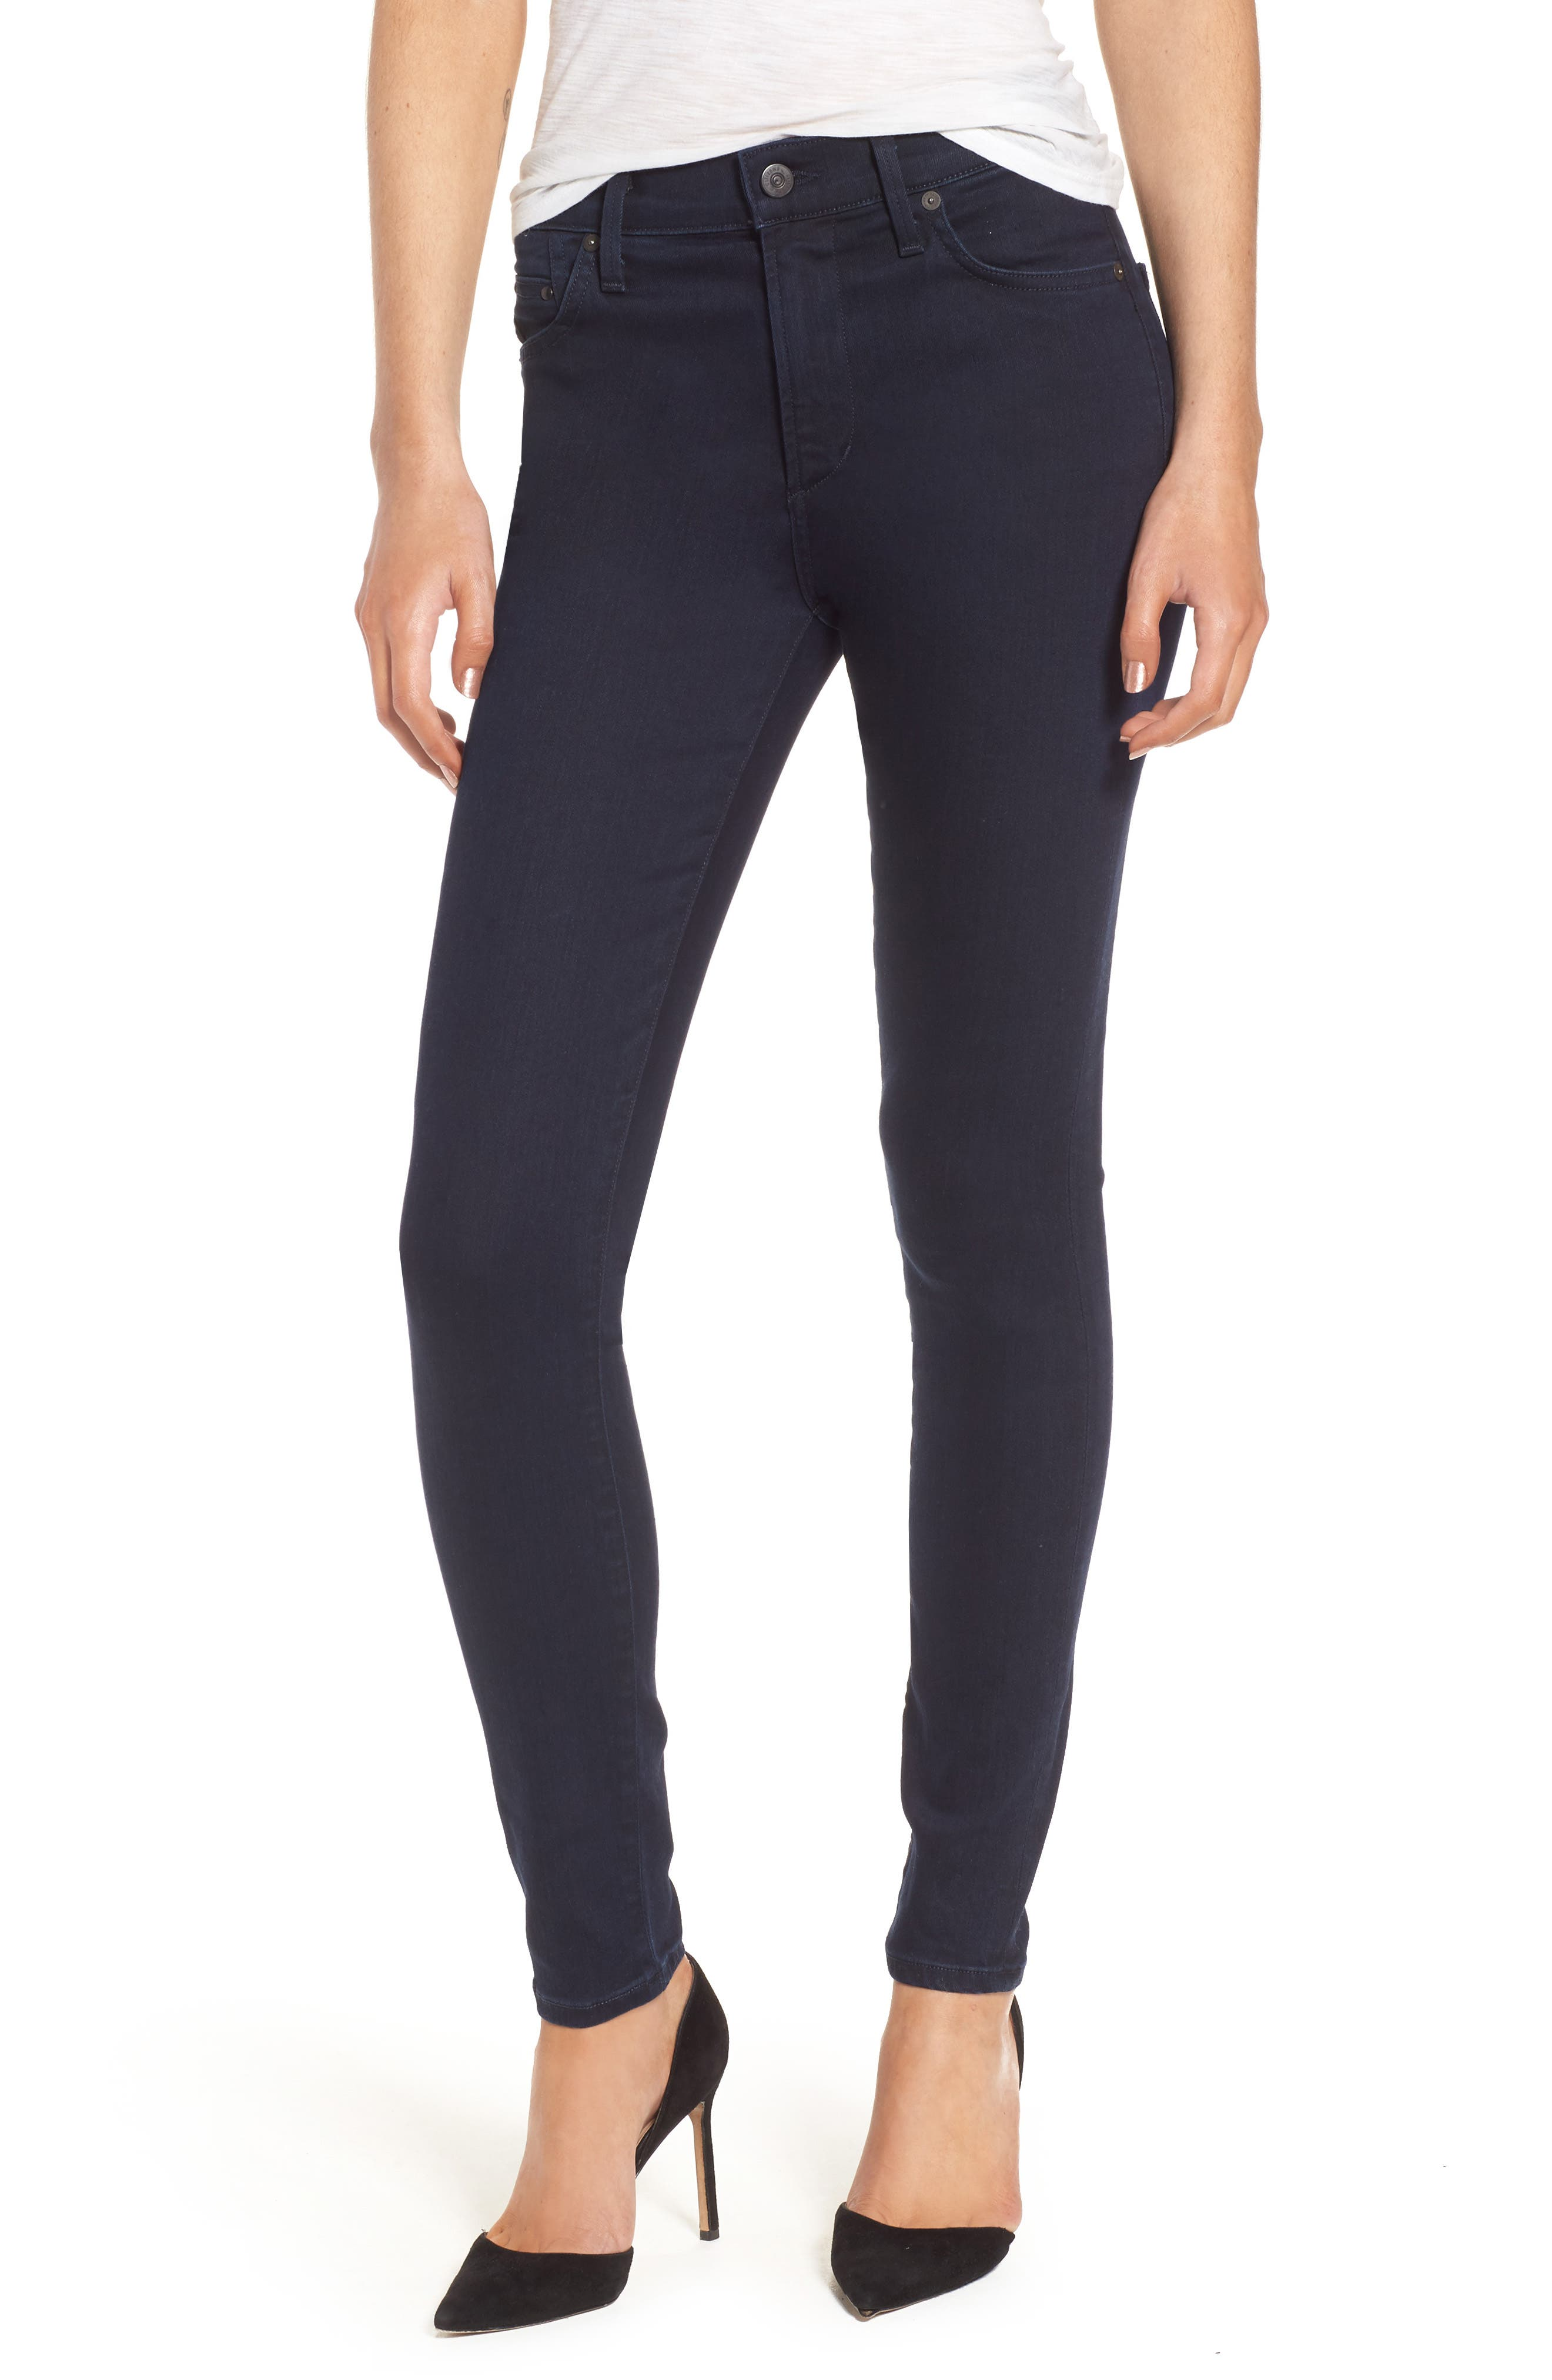 Main Image - Citizens of Humanity Rocket High Waist Skinny Jeans (Ozone Ink)